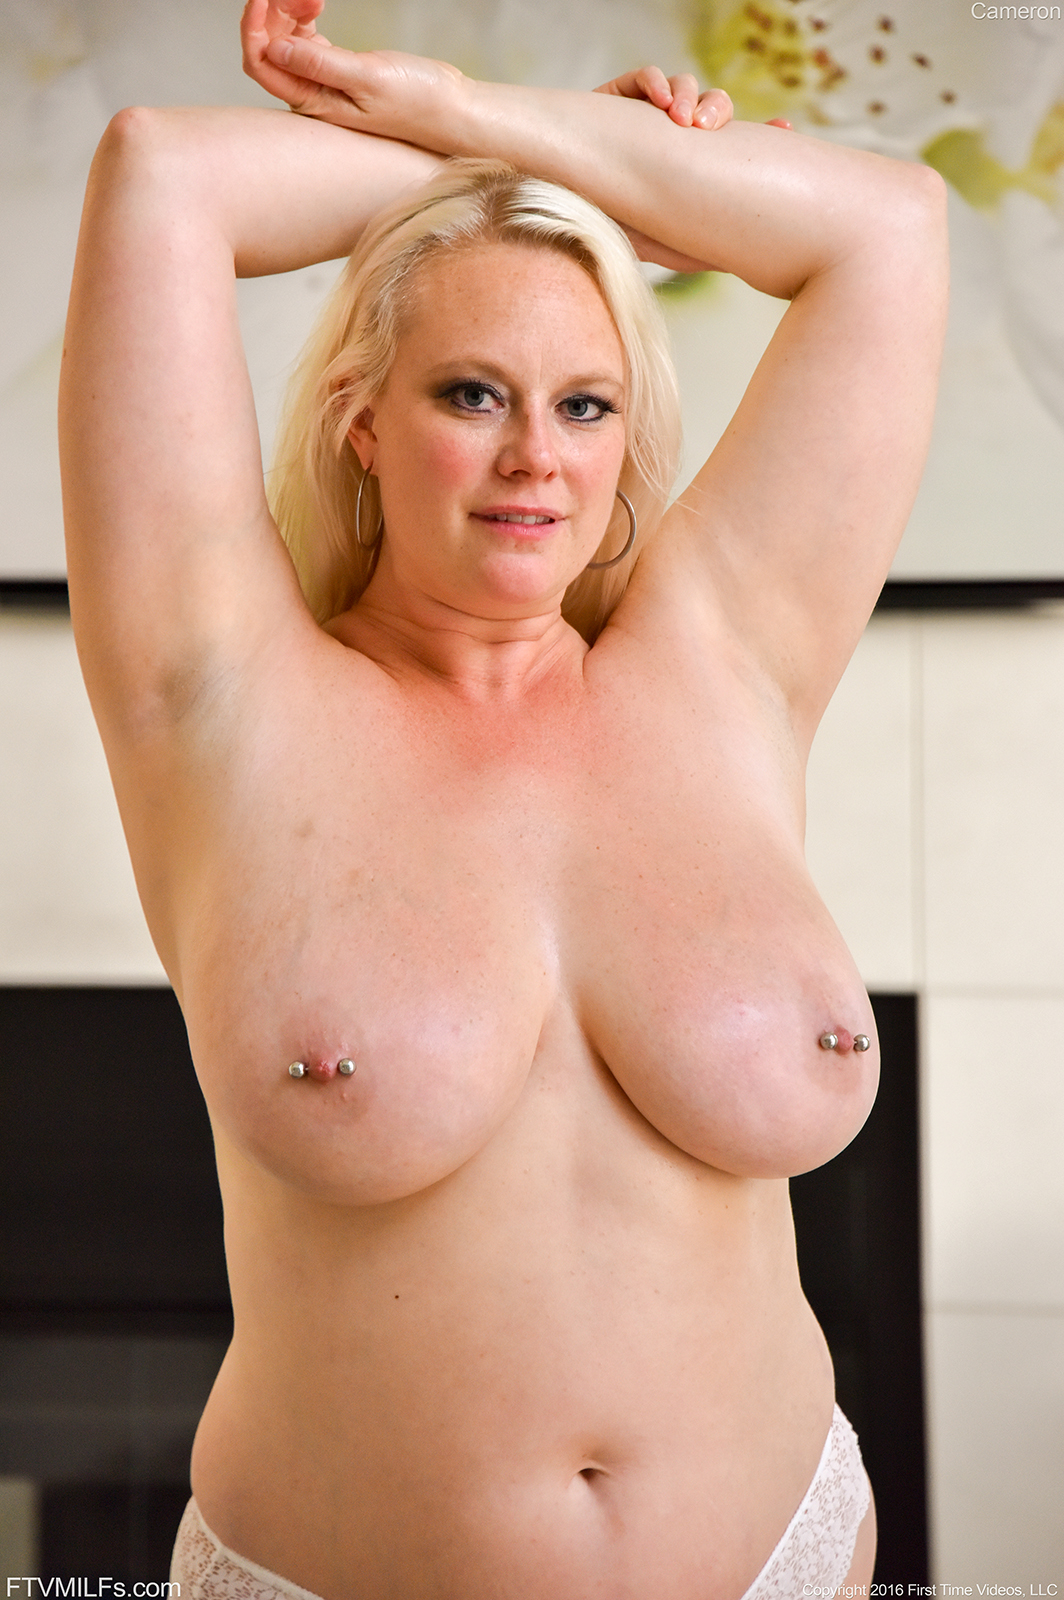 Milfs and toys